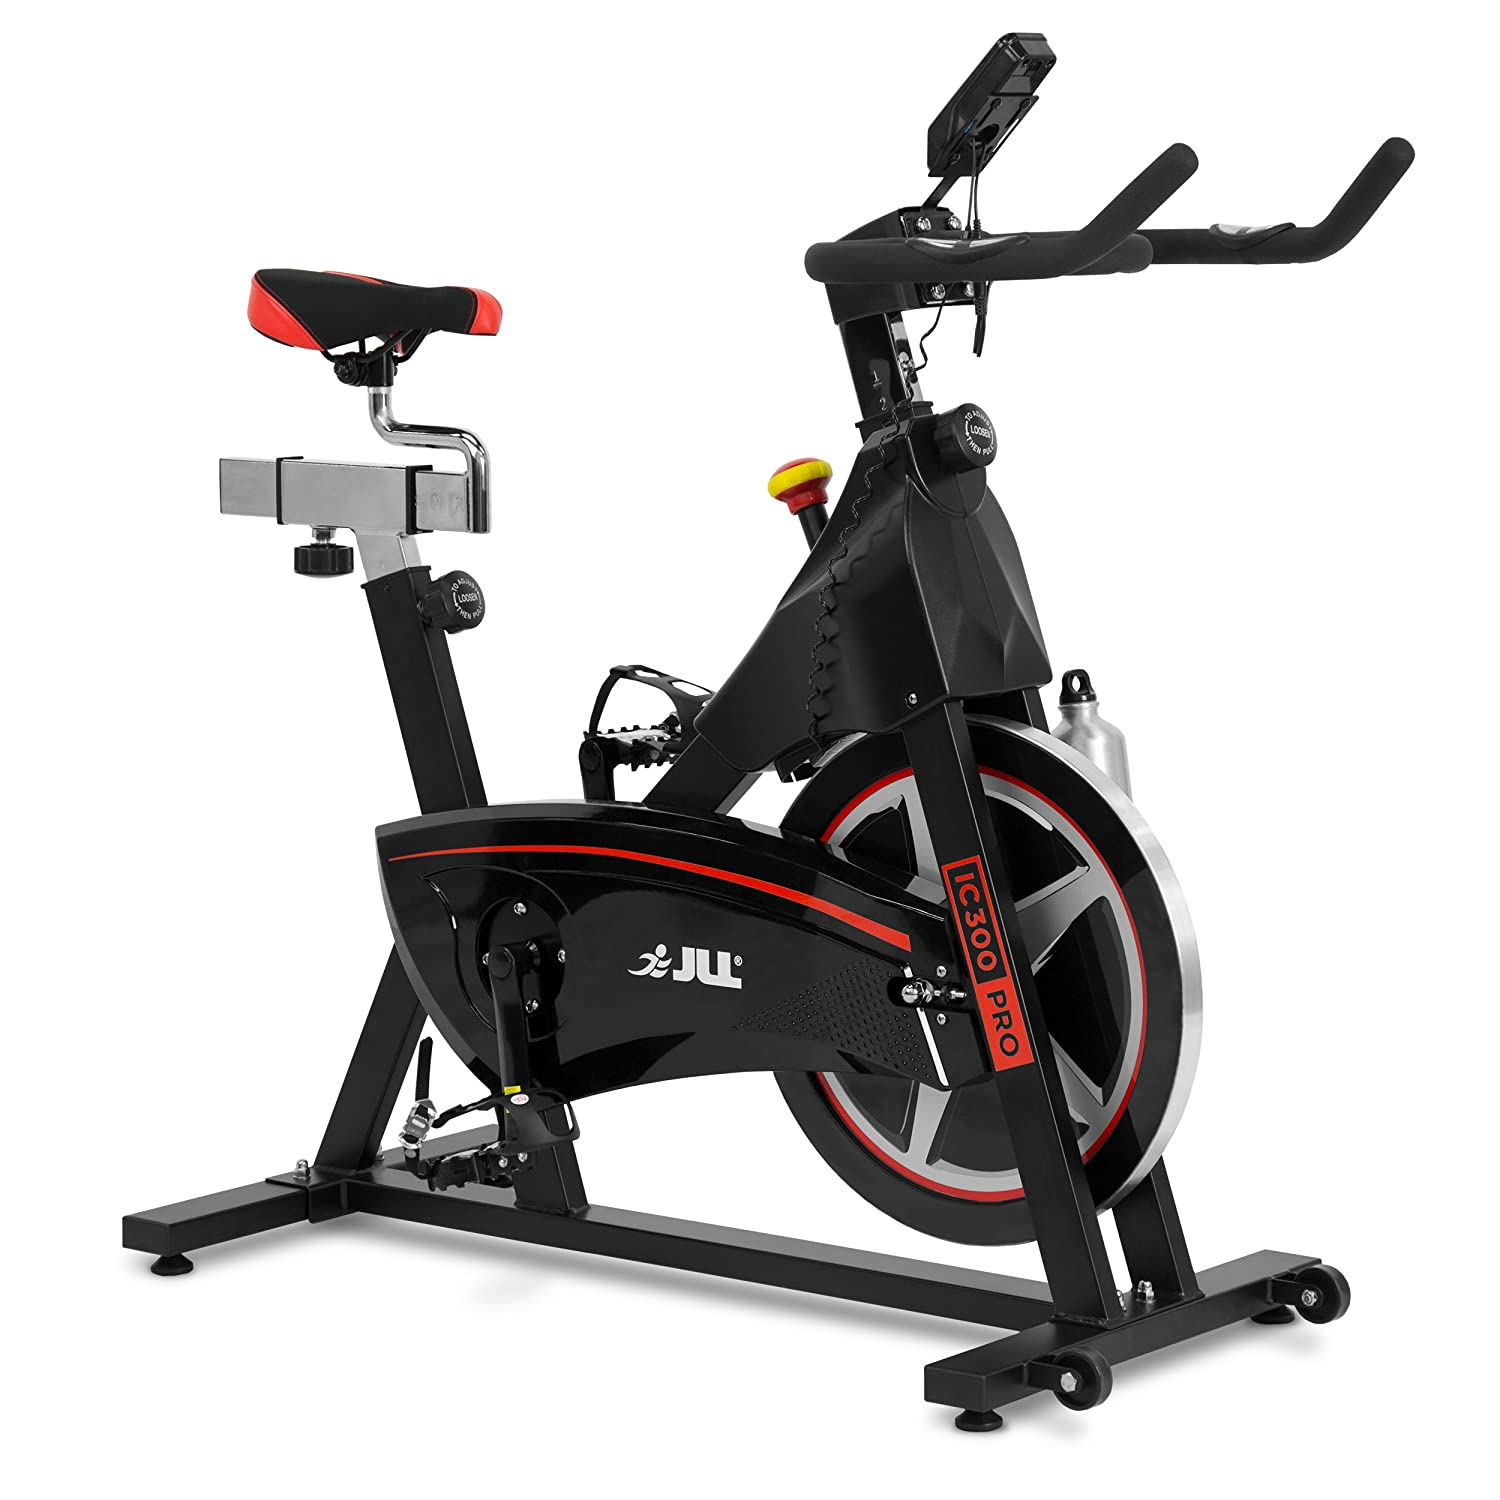 Best budget spin bike uk